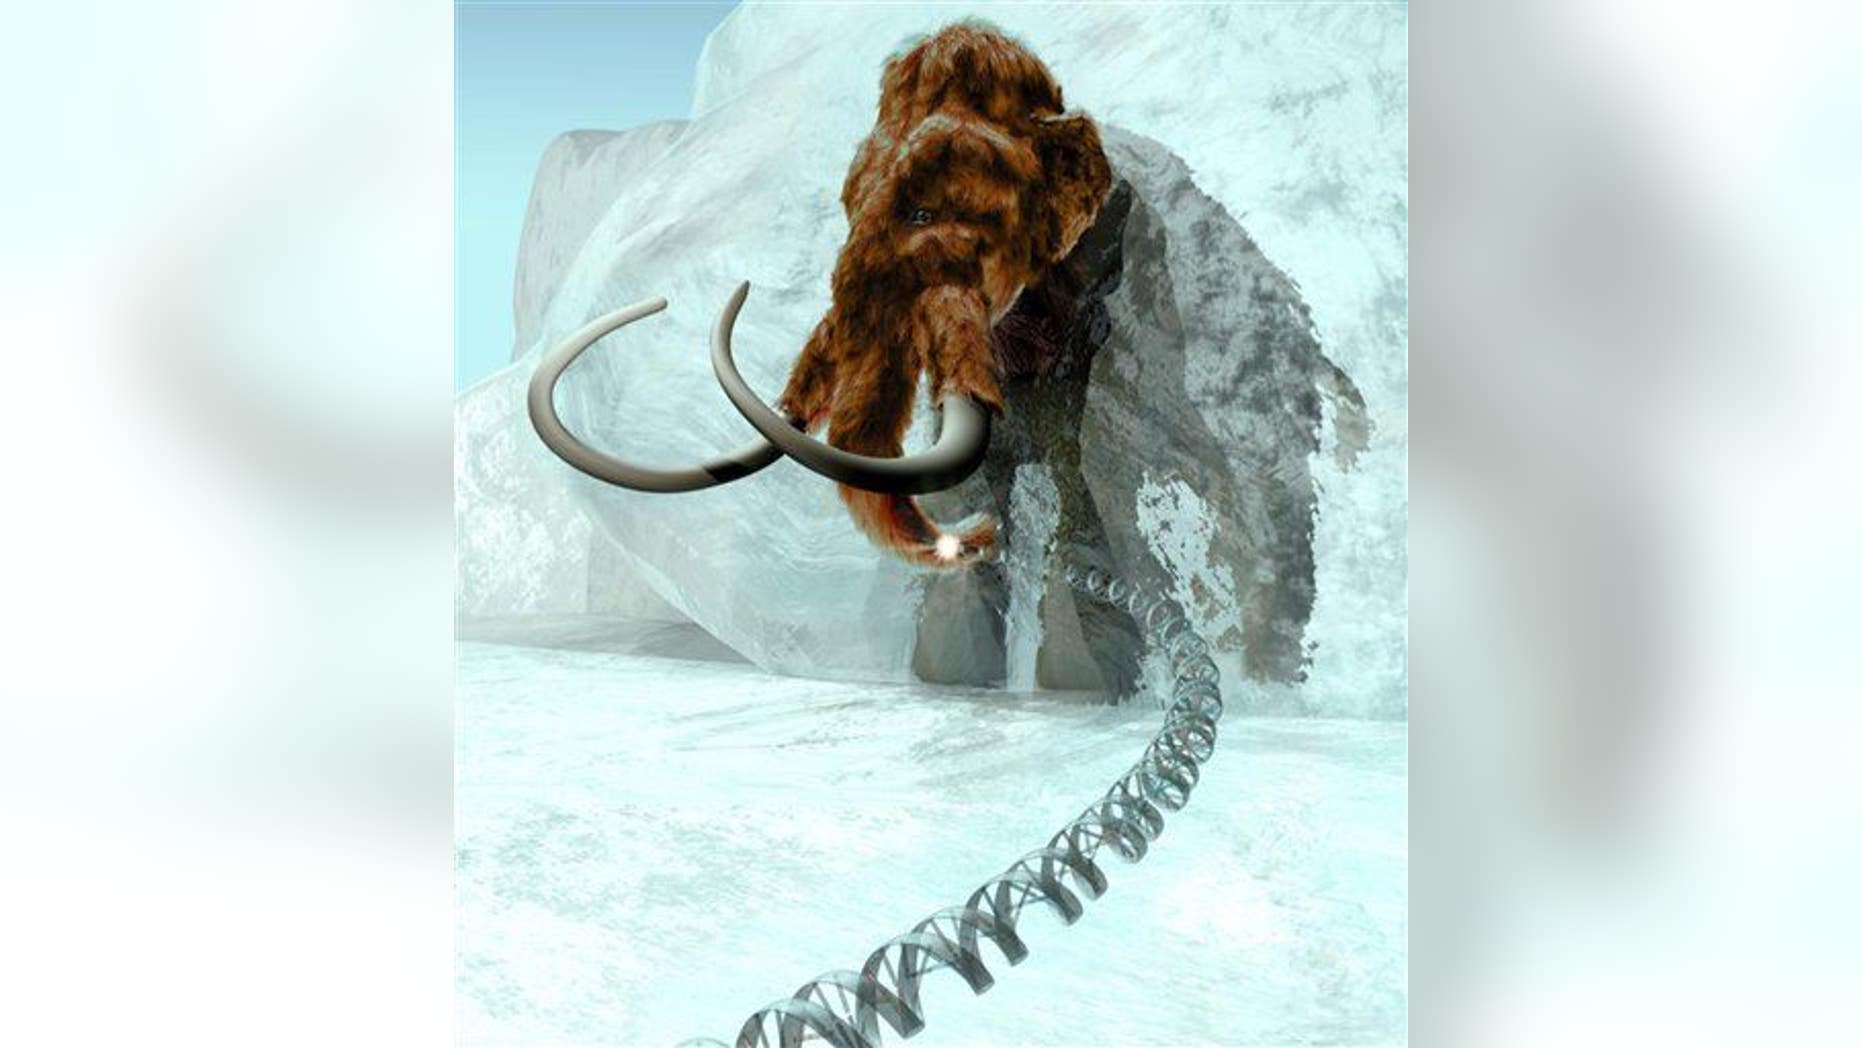 This undated handout shows a computer-generated Image of a woolly mammoth emerging from ice block.